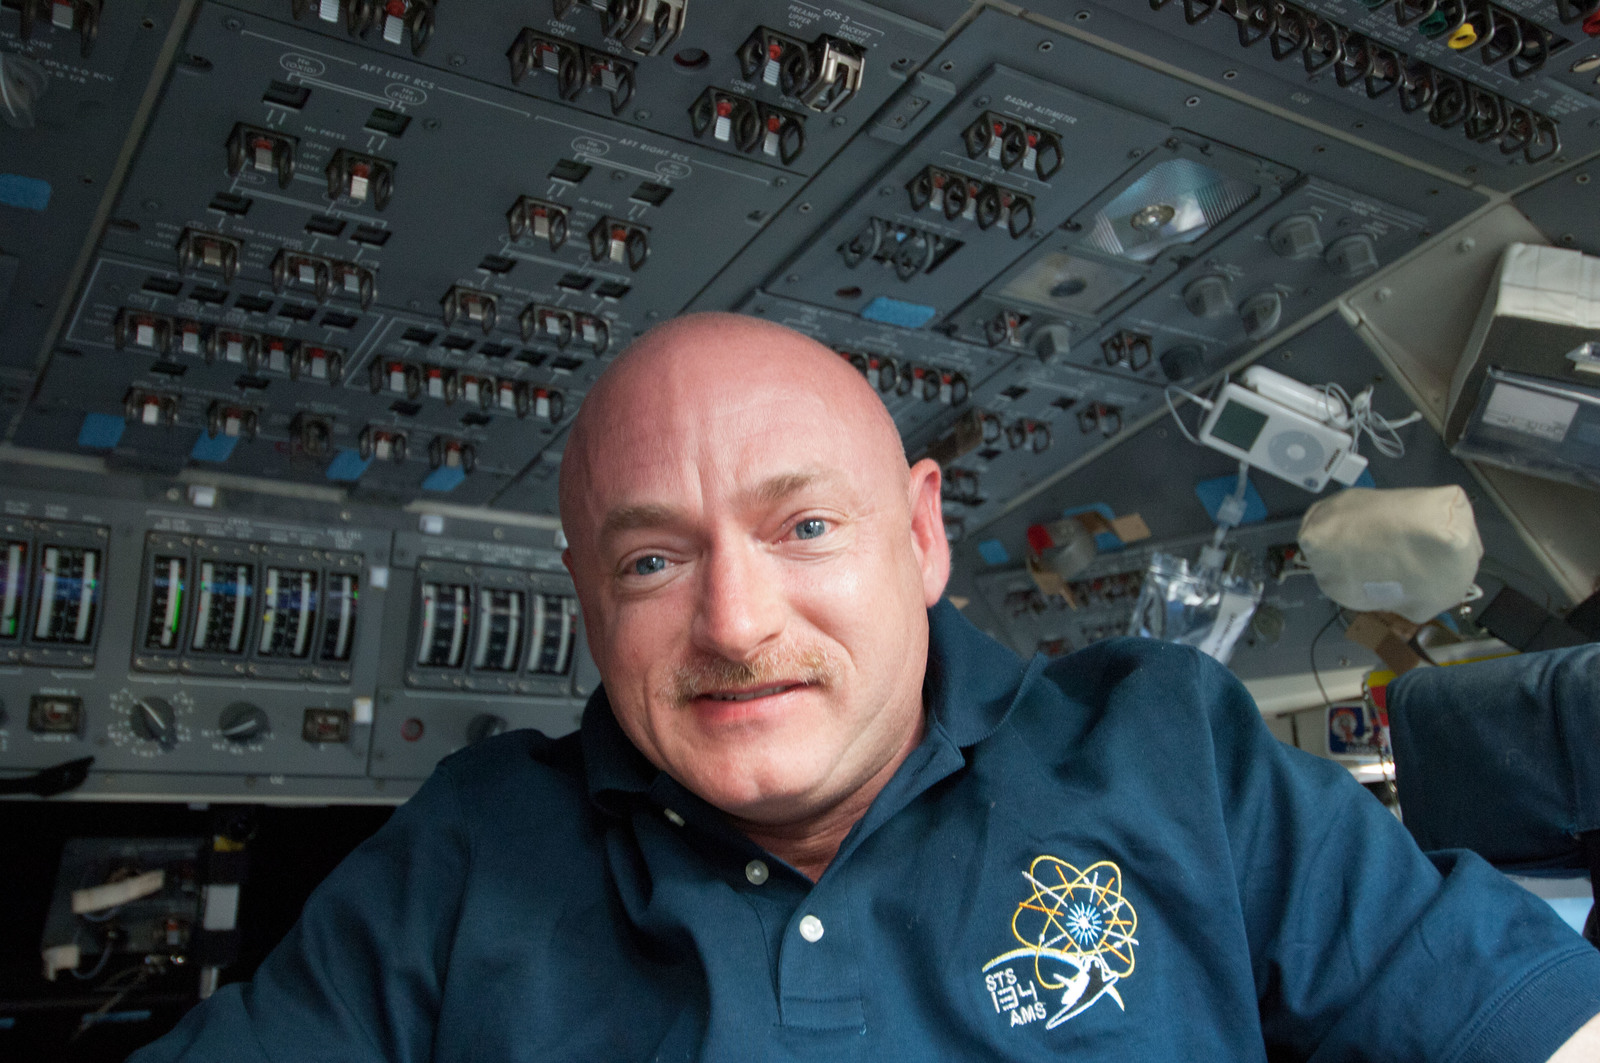 S134E005303 - STS-134 - View of STS-134 CDR Kelly on the Flight Deck